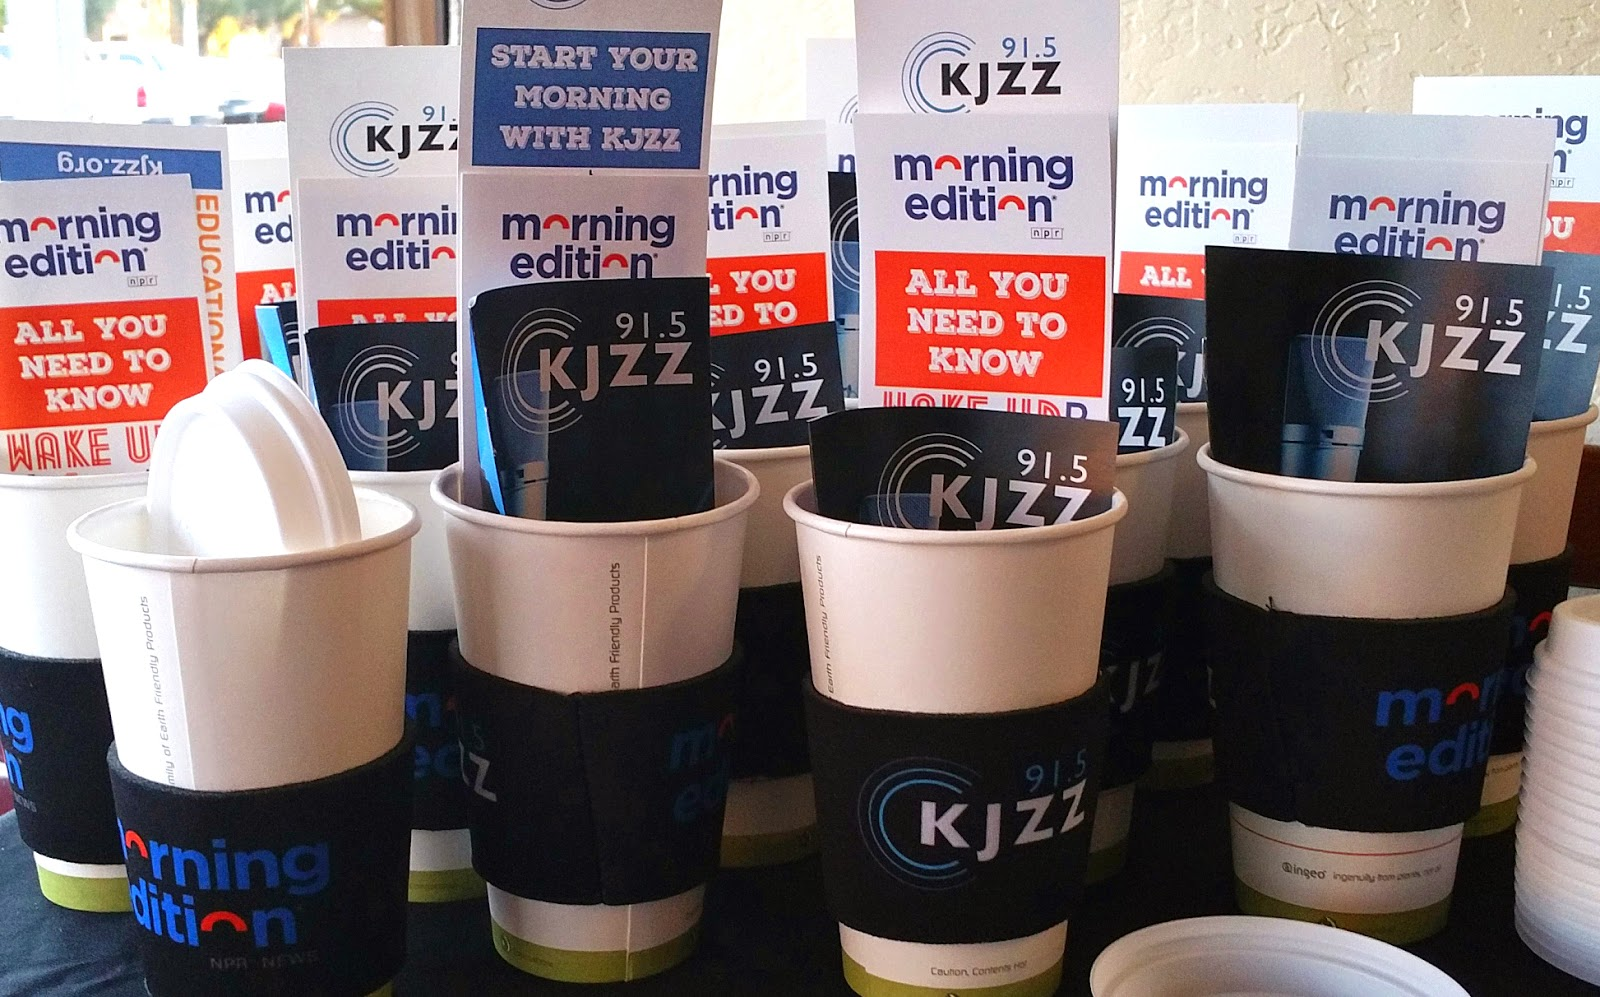 Images of KJZZ coffee cups